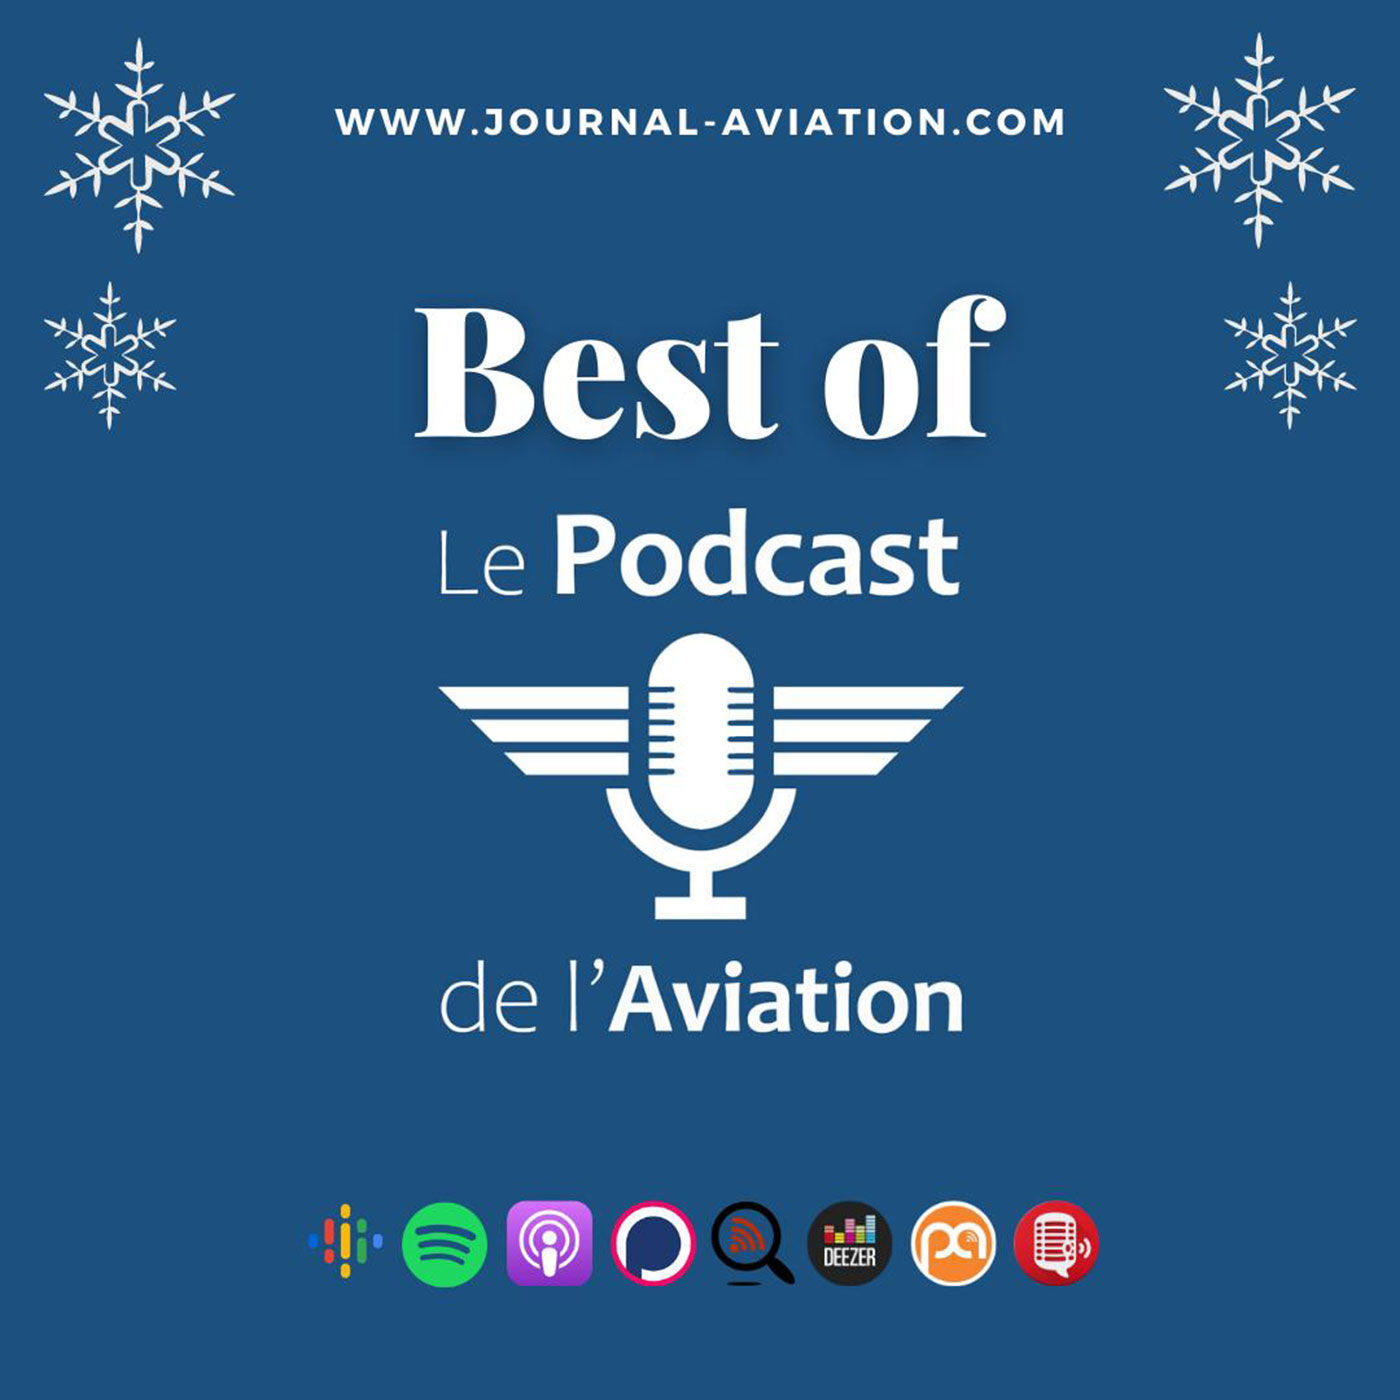 Les meilleurs moments 2020 du Podcast de l'Aviation